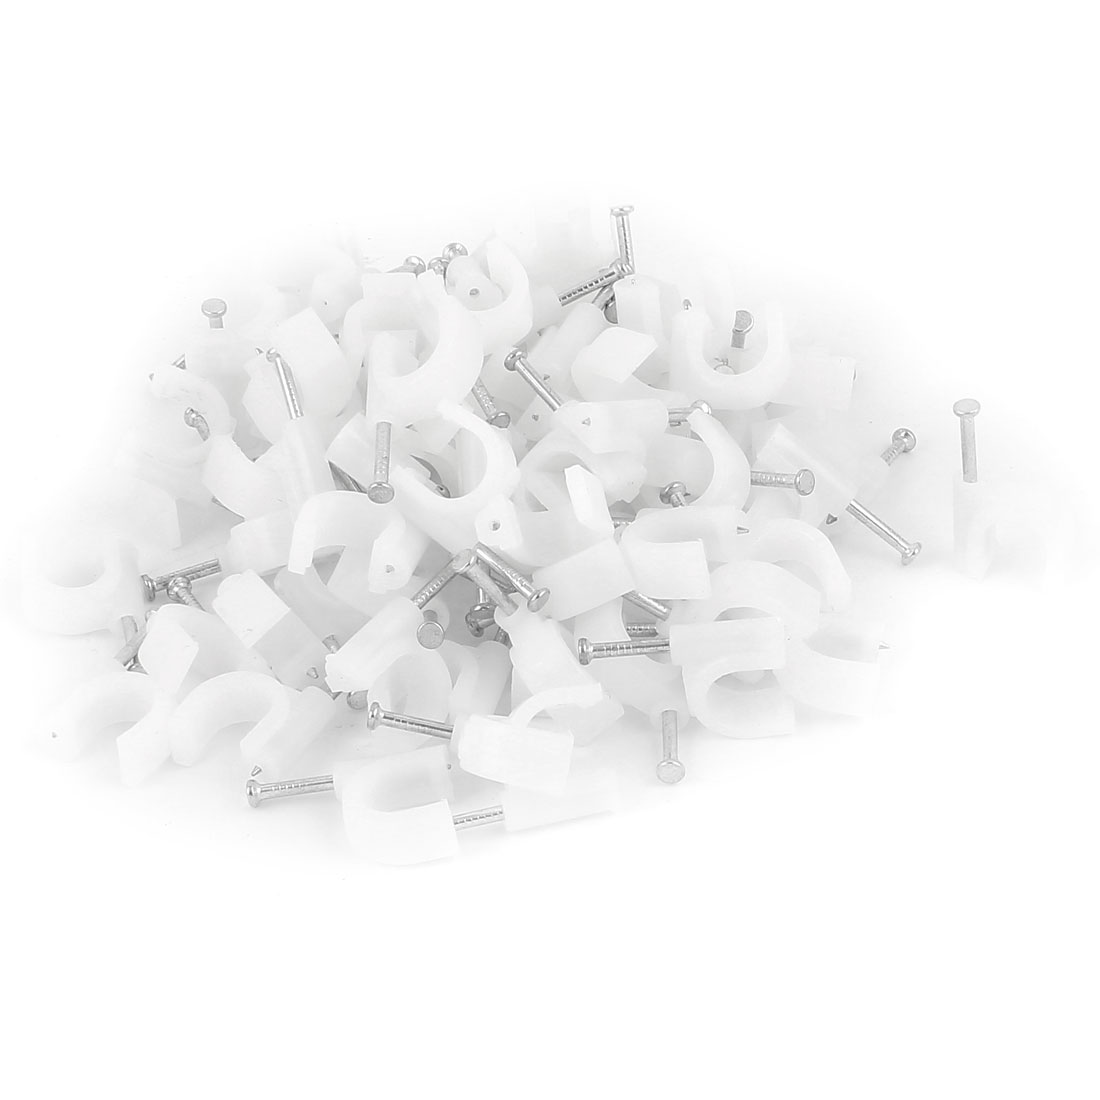 90Pcs 2mm Plastic Circle Electric Cable Nail Clips White